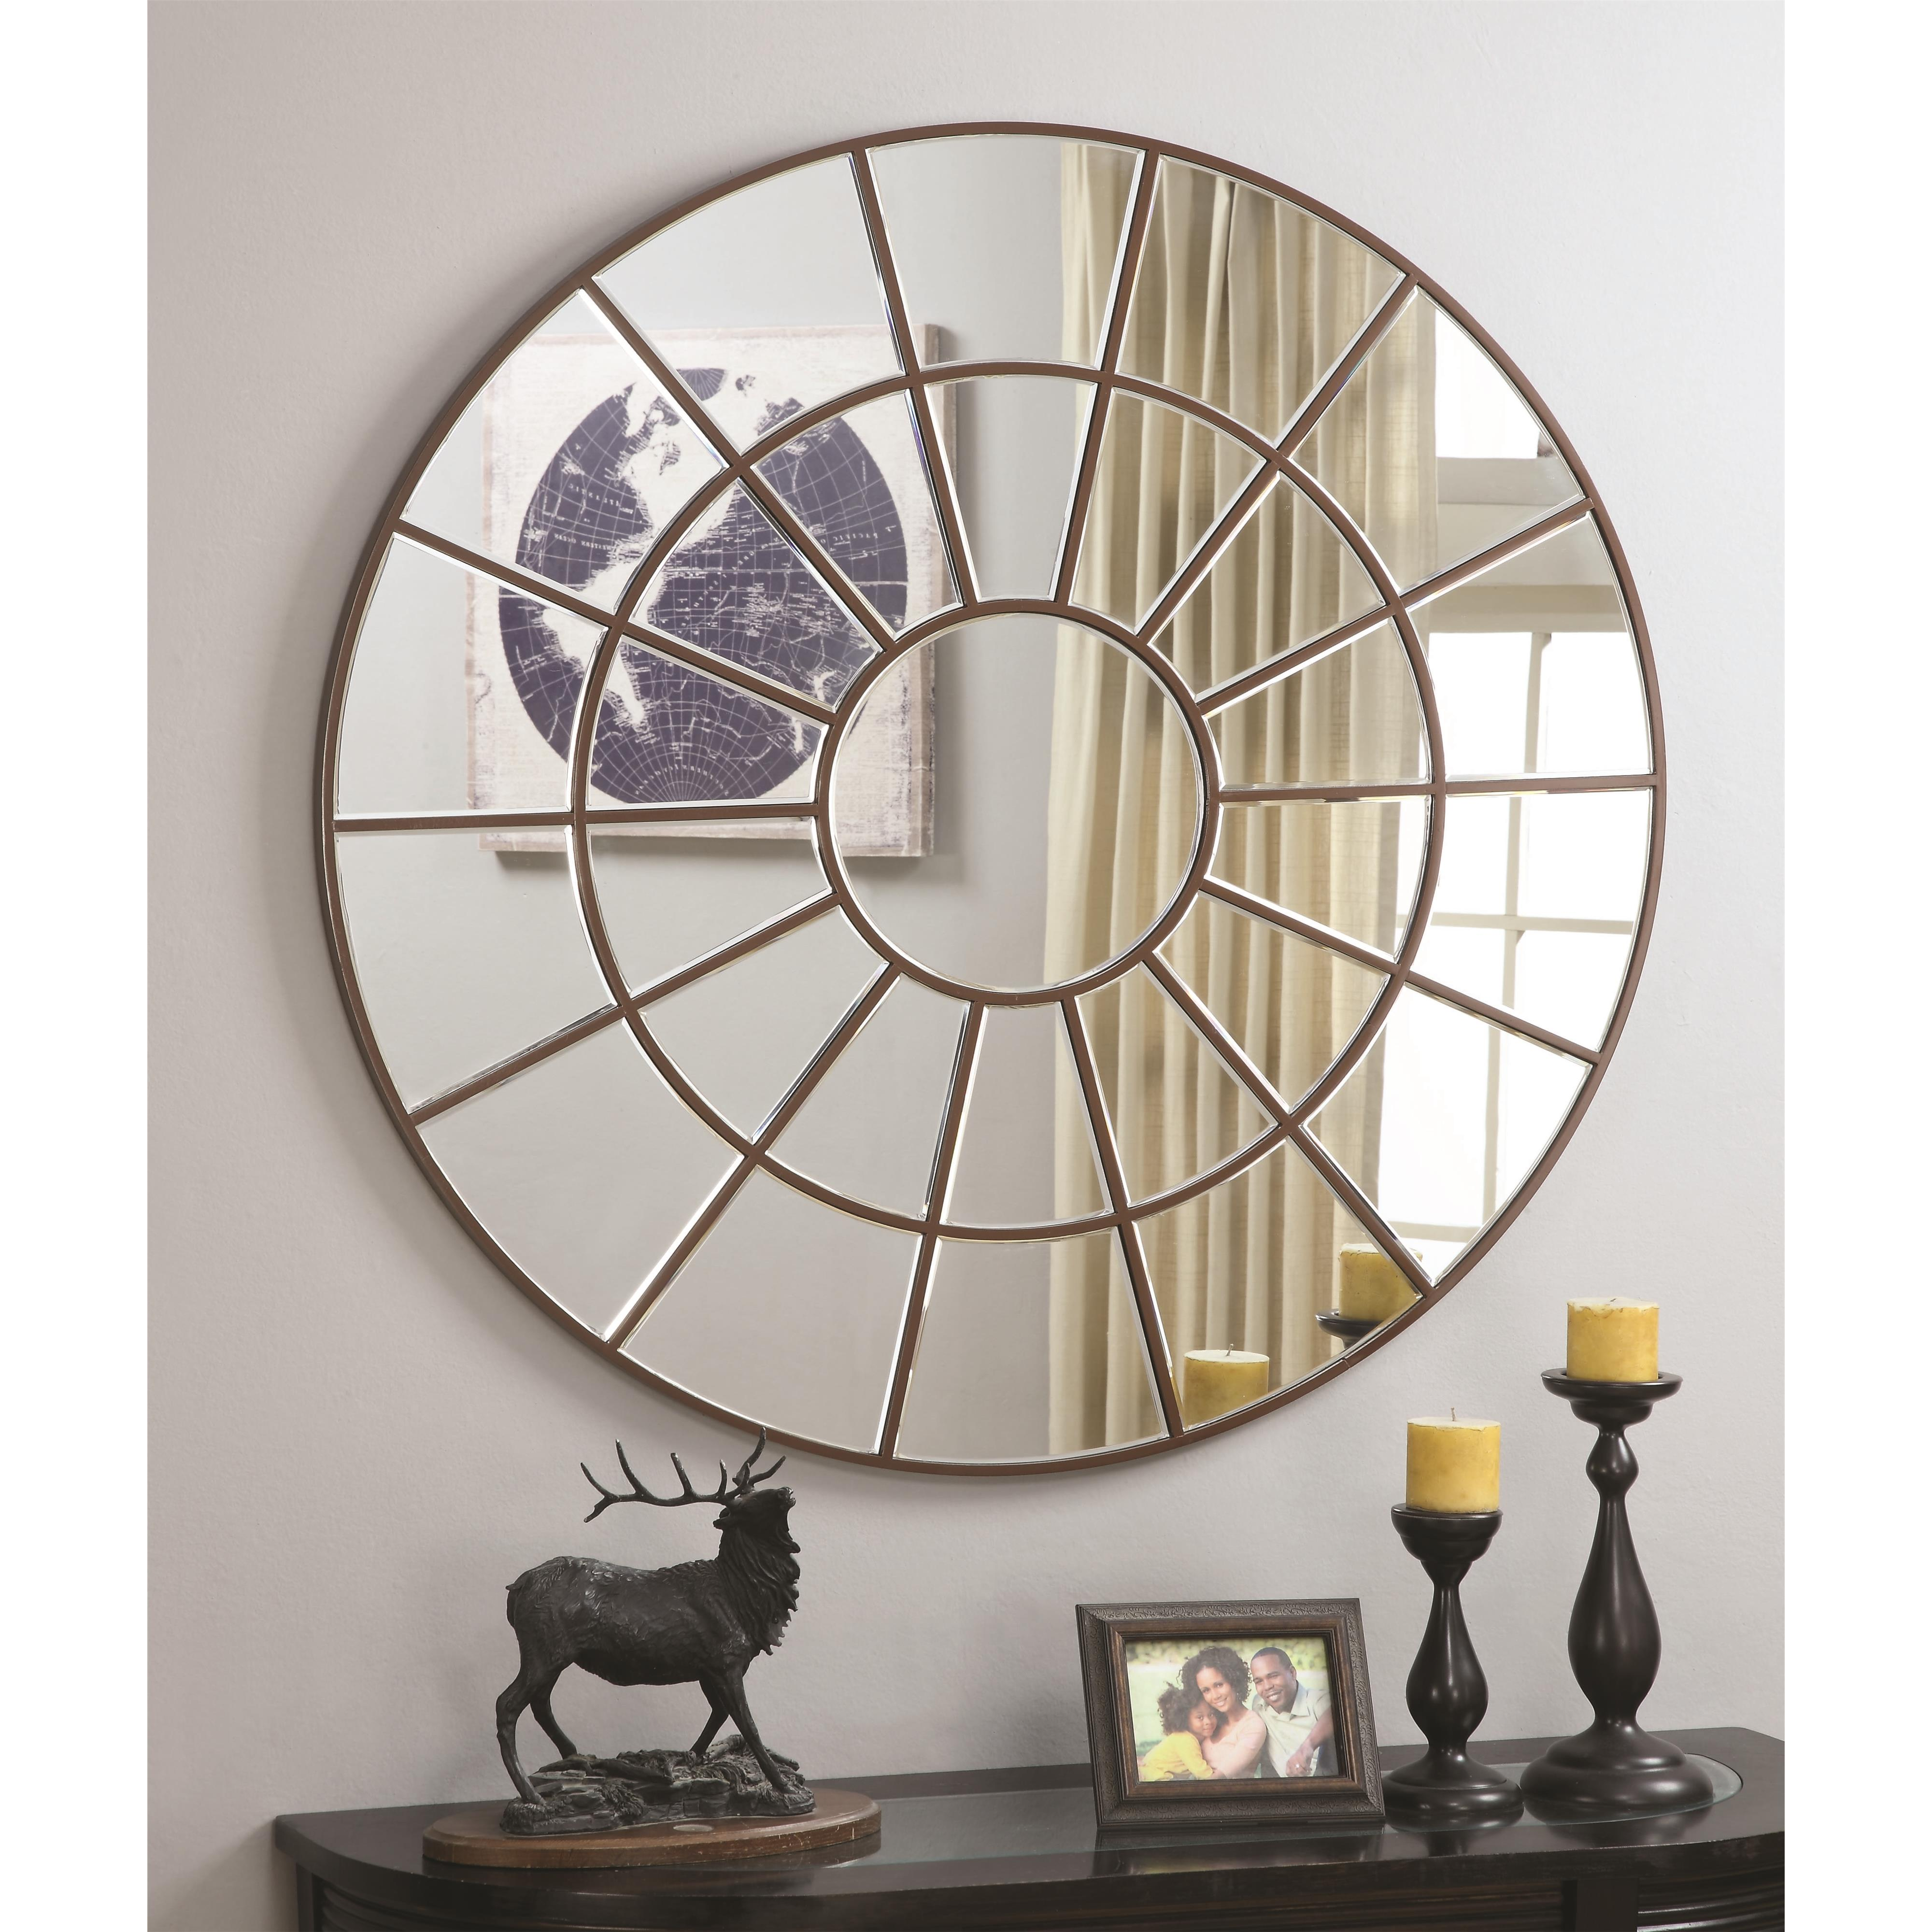 Coaster Accent Mirrors Mirror - Item Number: 901869